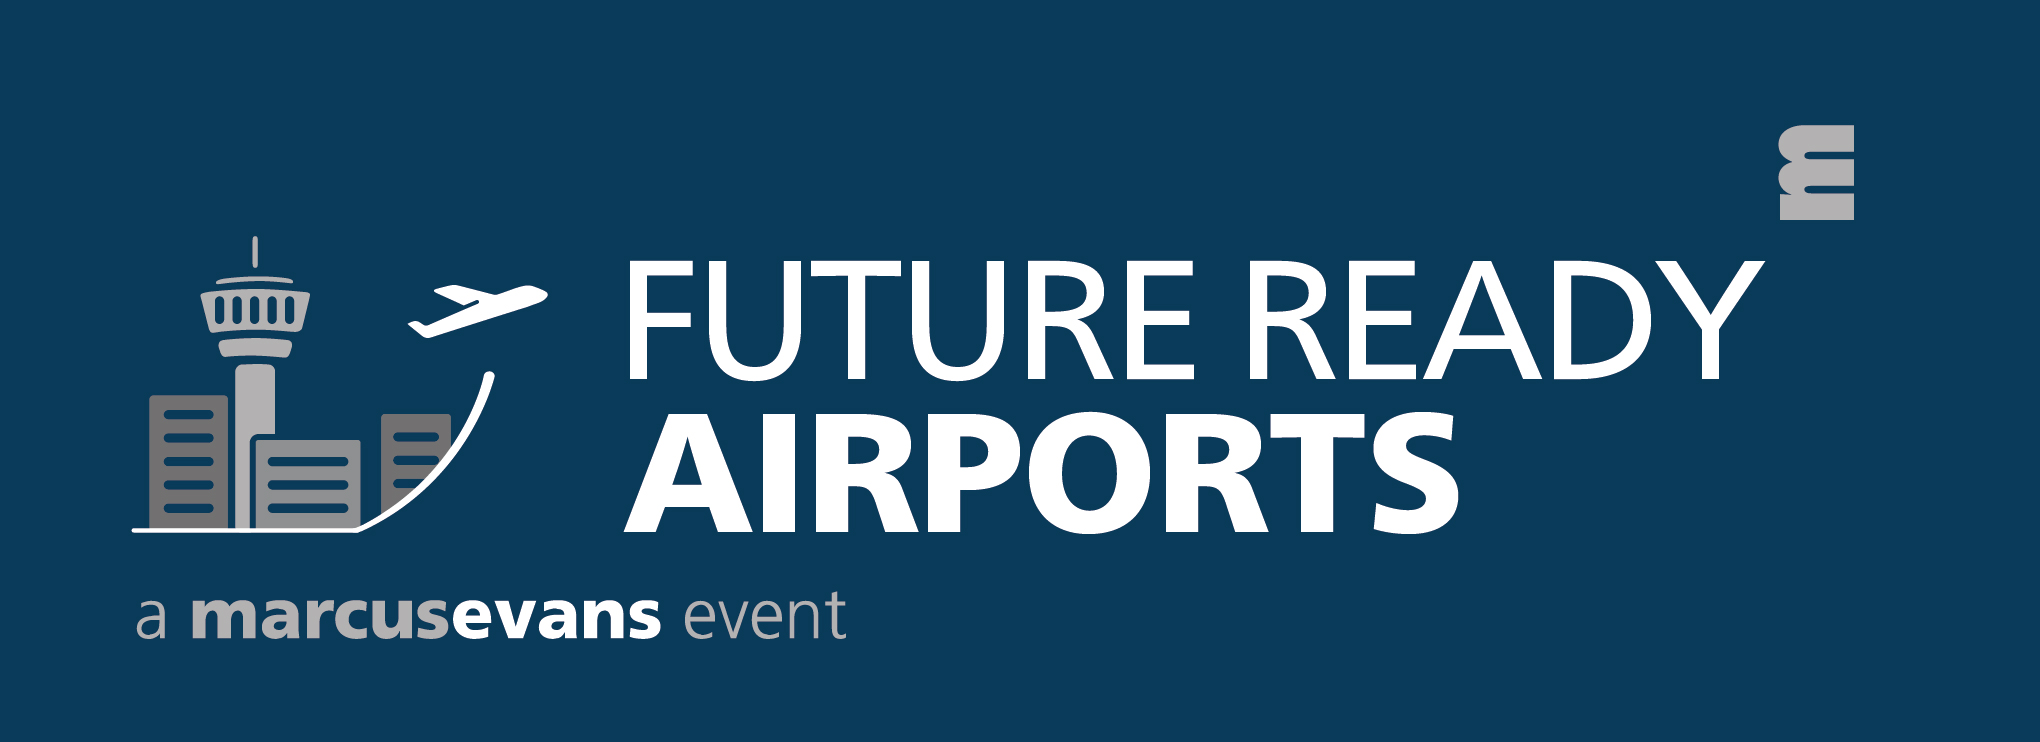 Future Ready Airports